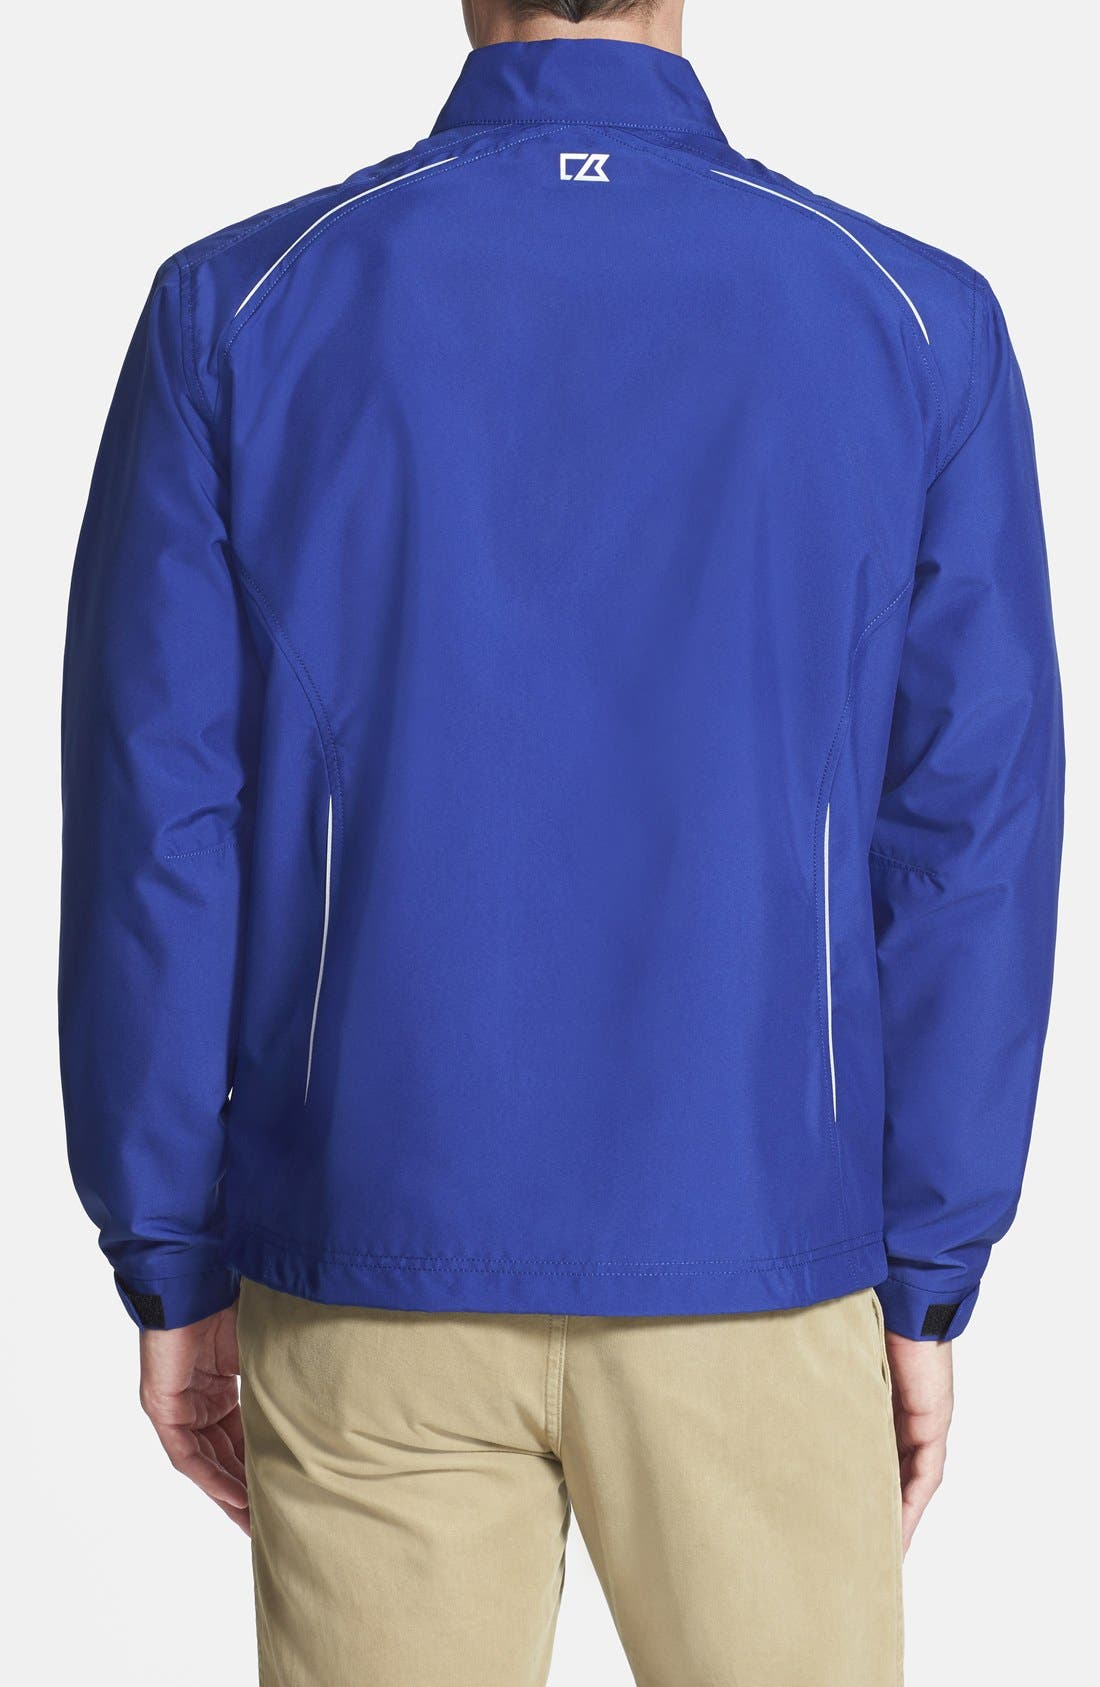 Indianapolis Colts - Beacon WeatherTec Wind & Water Resistant Jacket,                             Alternate thumbnail 2, color,                             462